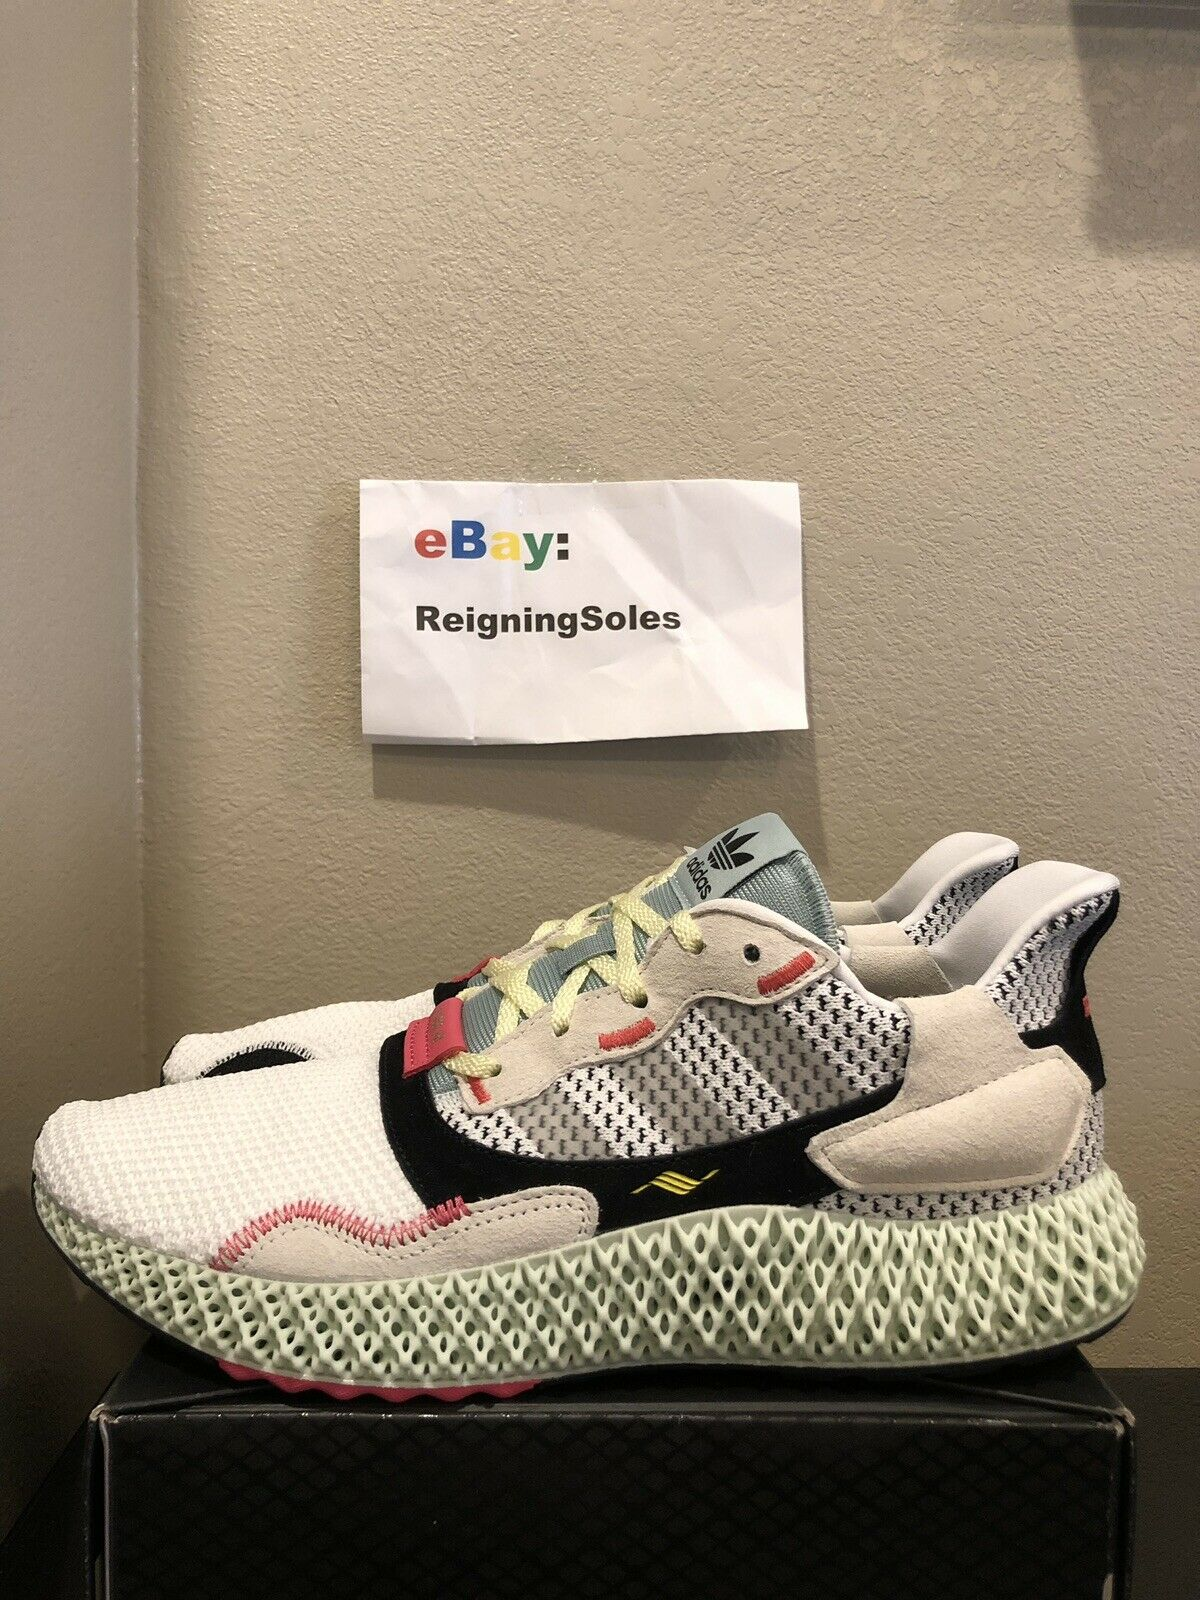 Adidas ZX 4000 4D Futurecraft B42203 Size 8.5 In Hand Ready To Ship